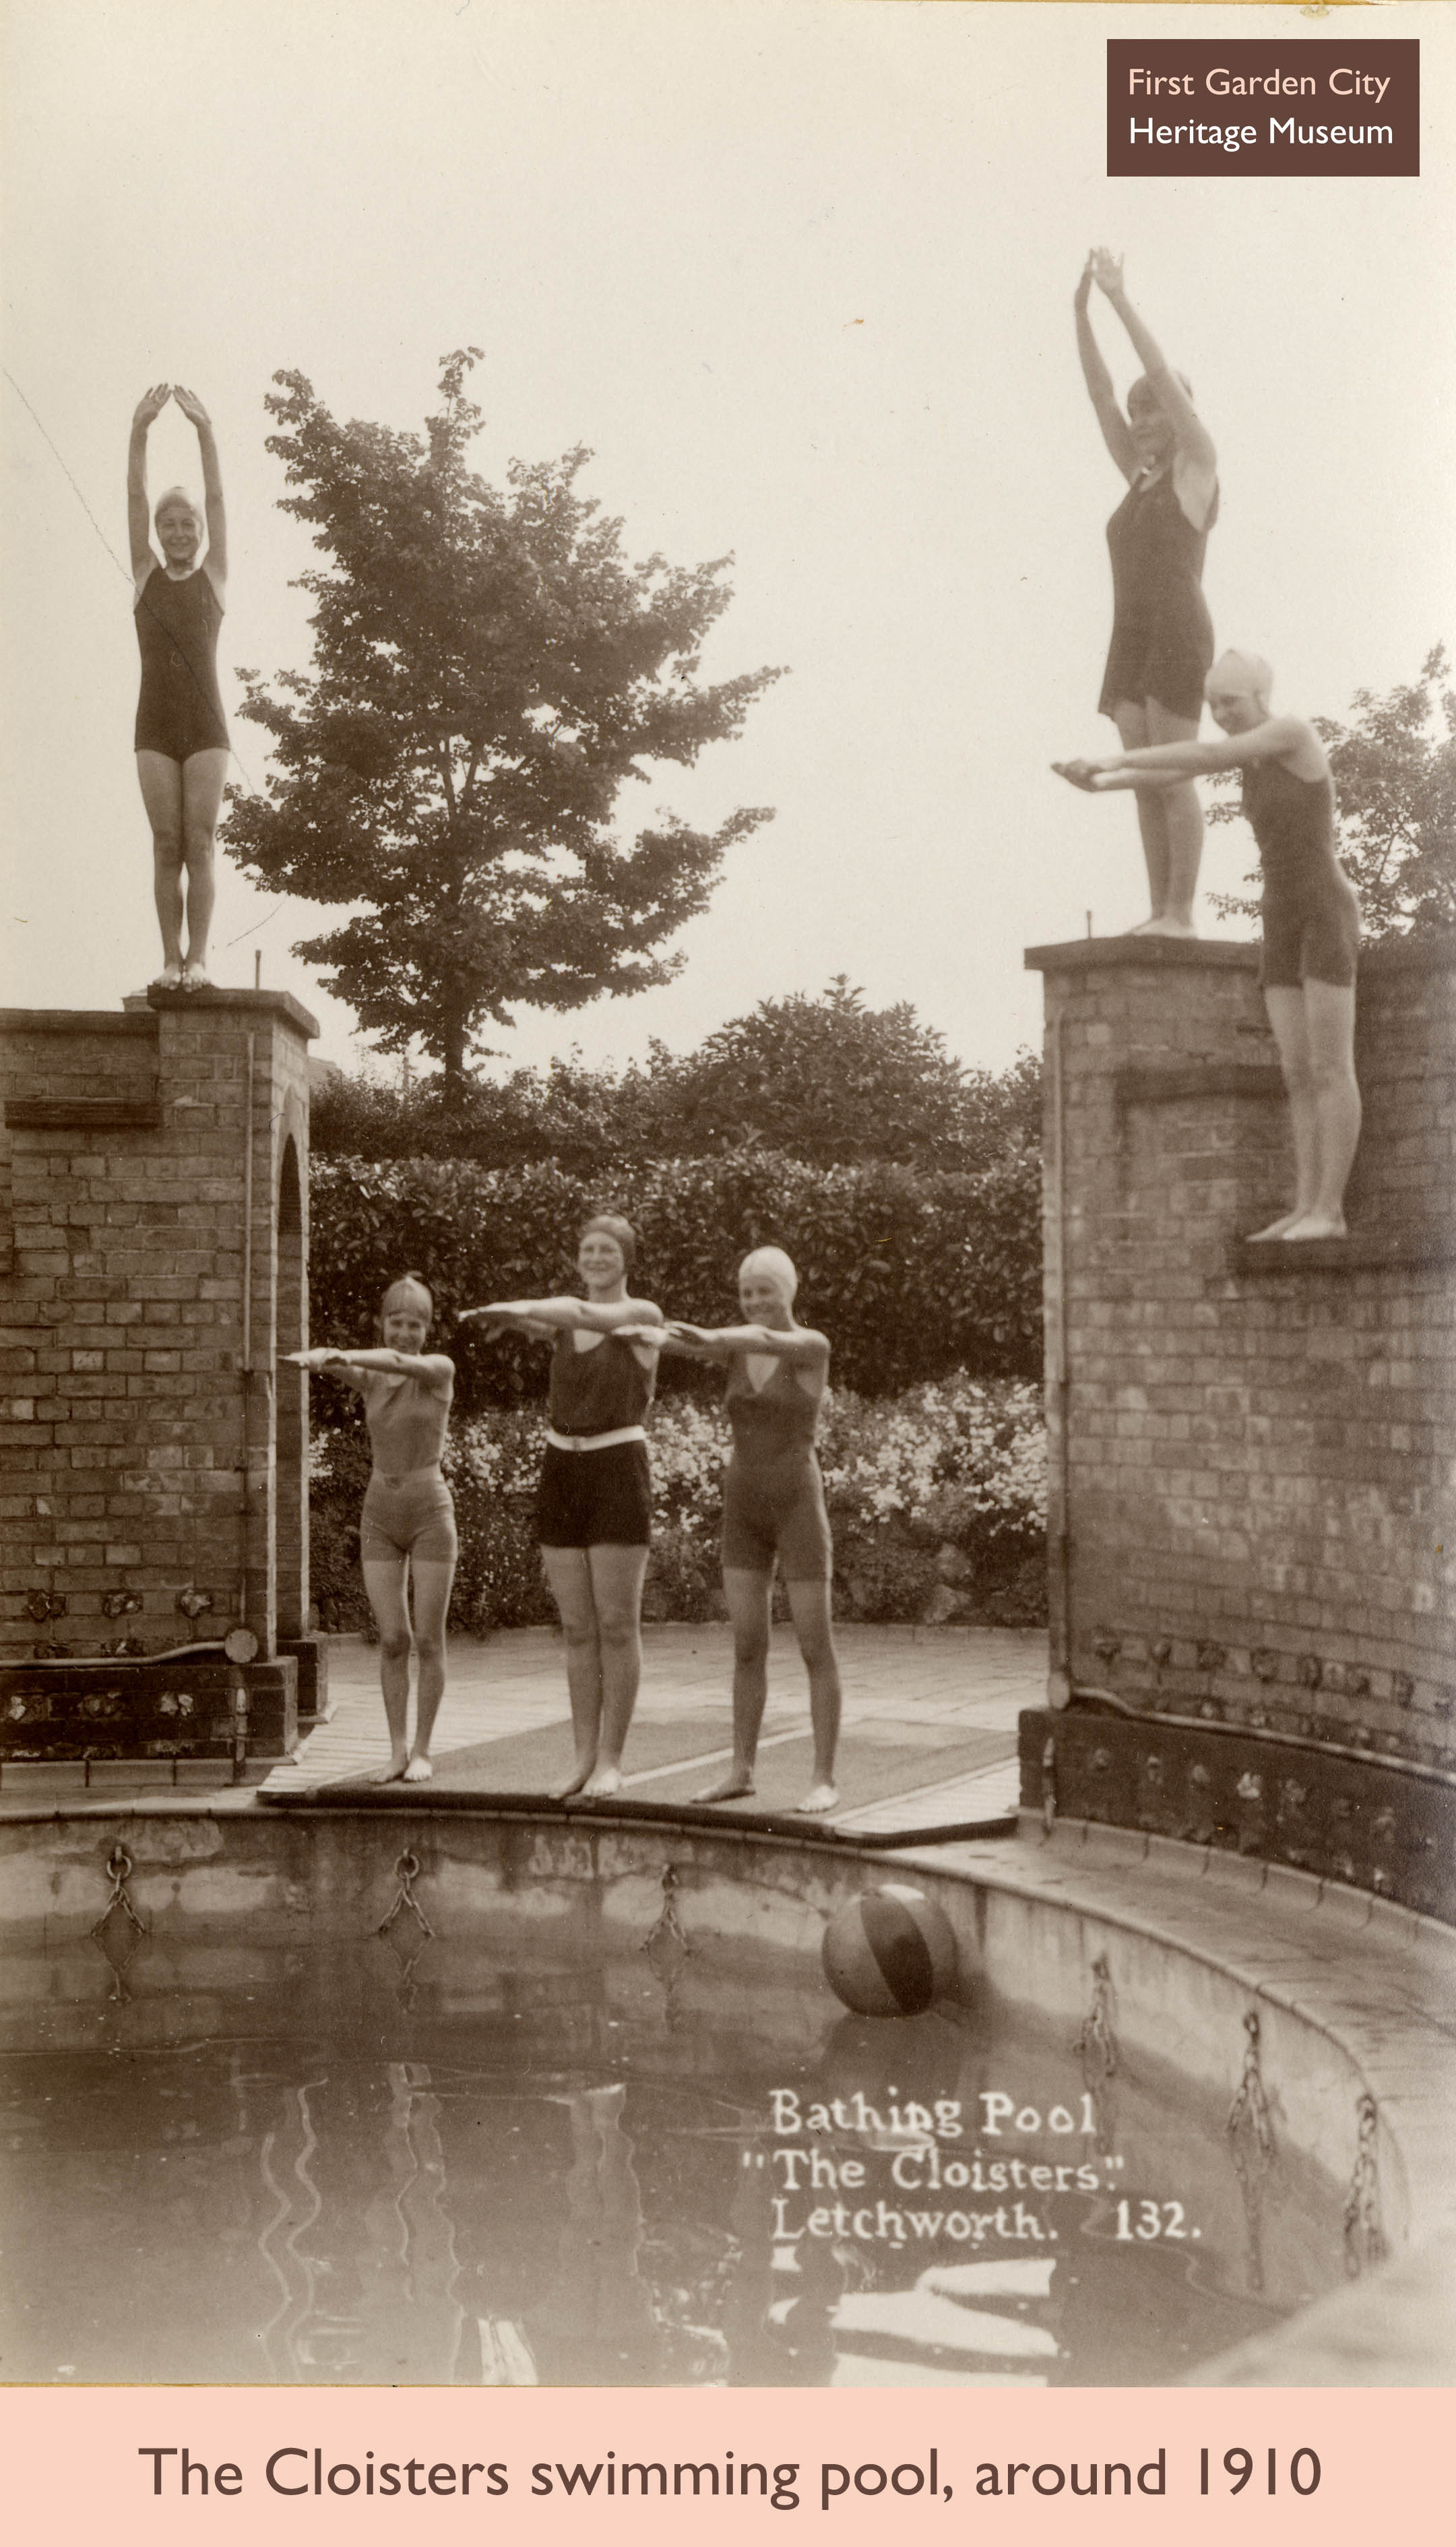 The cloisters swimming pool e2bn gallery for Letchworth swimming pool prices